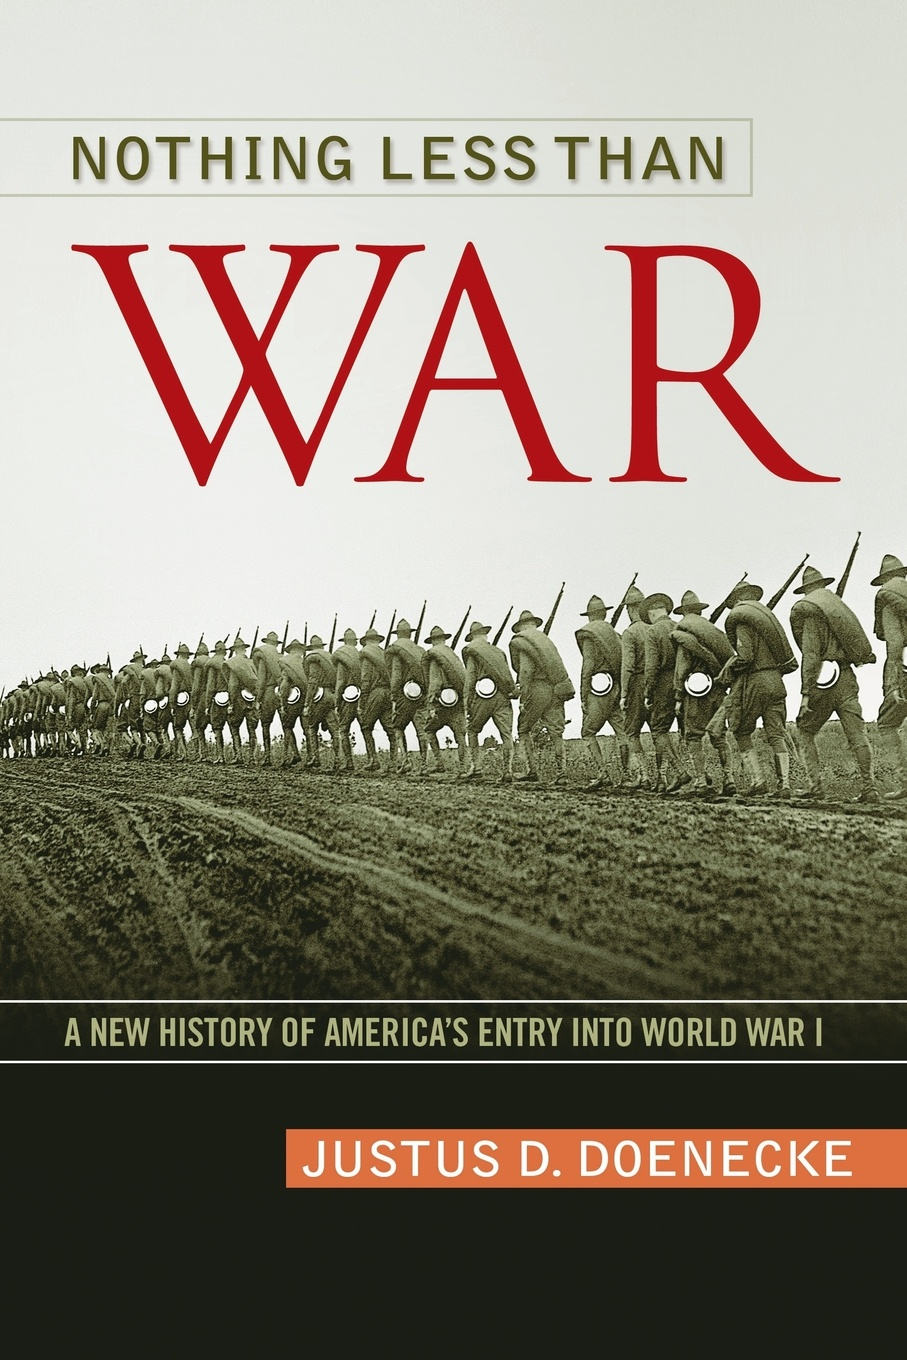 Фото - Justus D. Doenecke Nothing Less Than War. A New History of America's Entry Into World War I woodrow wilson war labor and peace some recent addresses and writings of president wilson issued by the committee on public information washington d c